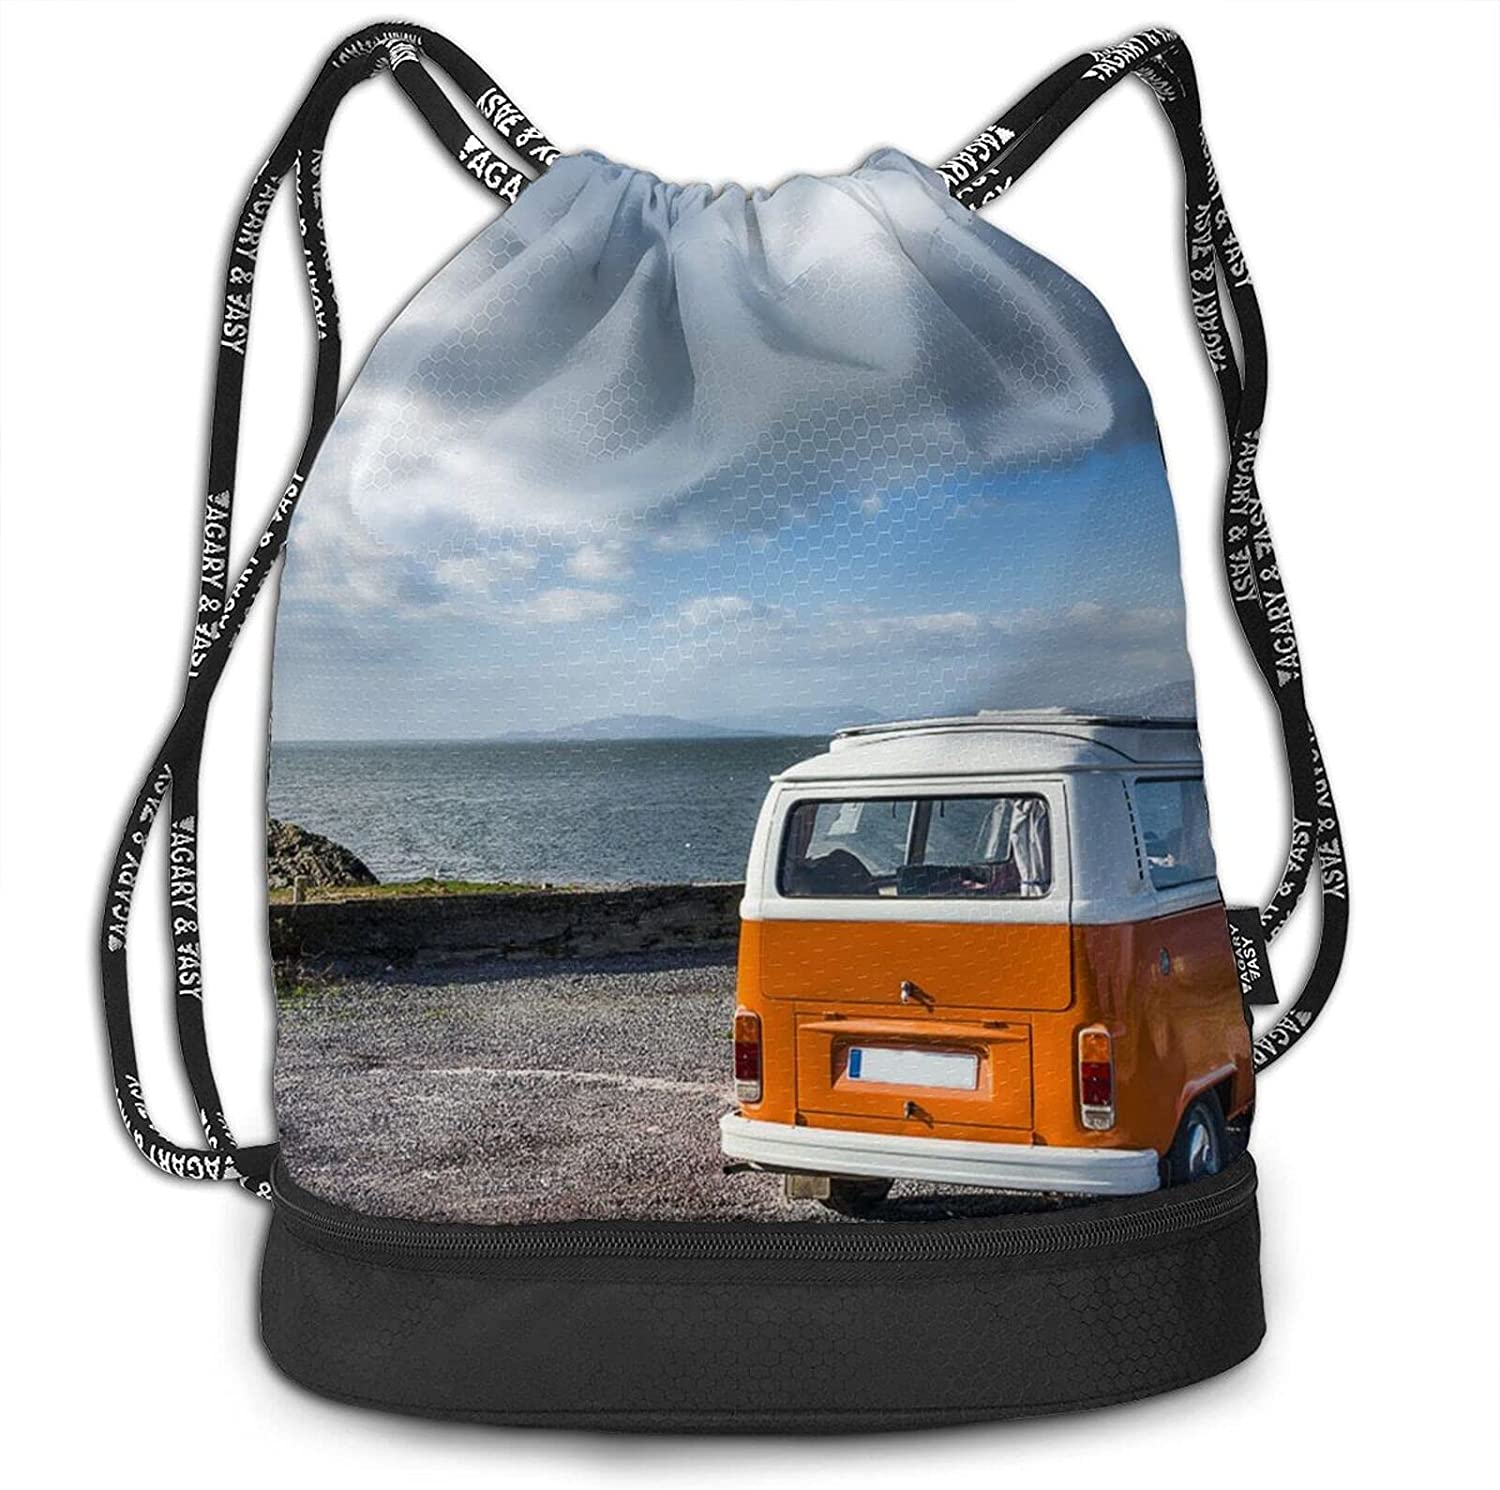 Wild Way Bus Printing Drawstring Backpack Max 52% OFF Limited time trial price Gym Bul Bag